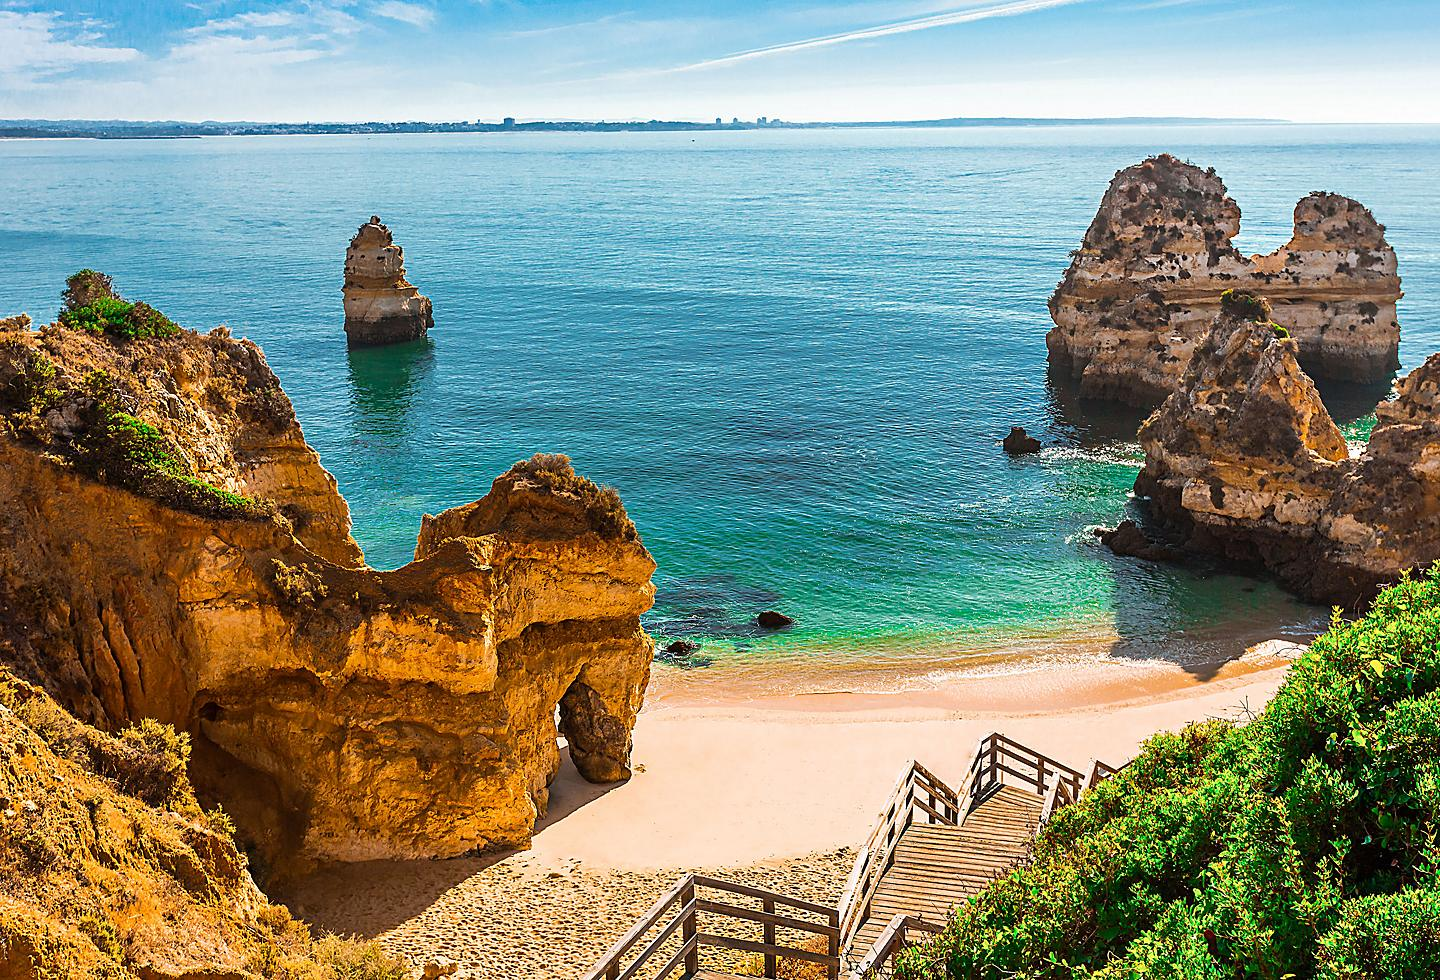 Portugal Algarve Praia de Benagil Cliffs by the Ocean